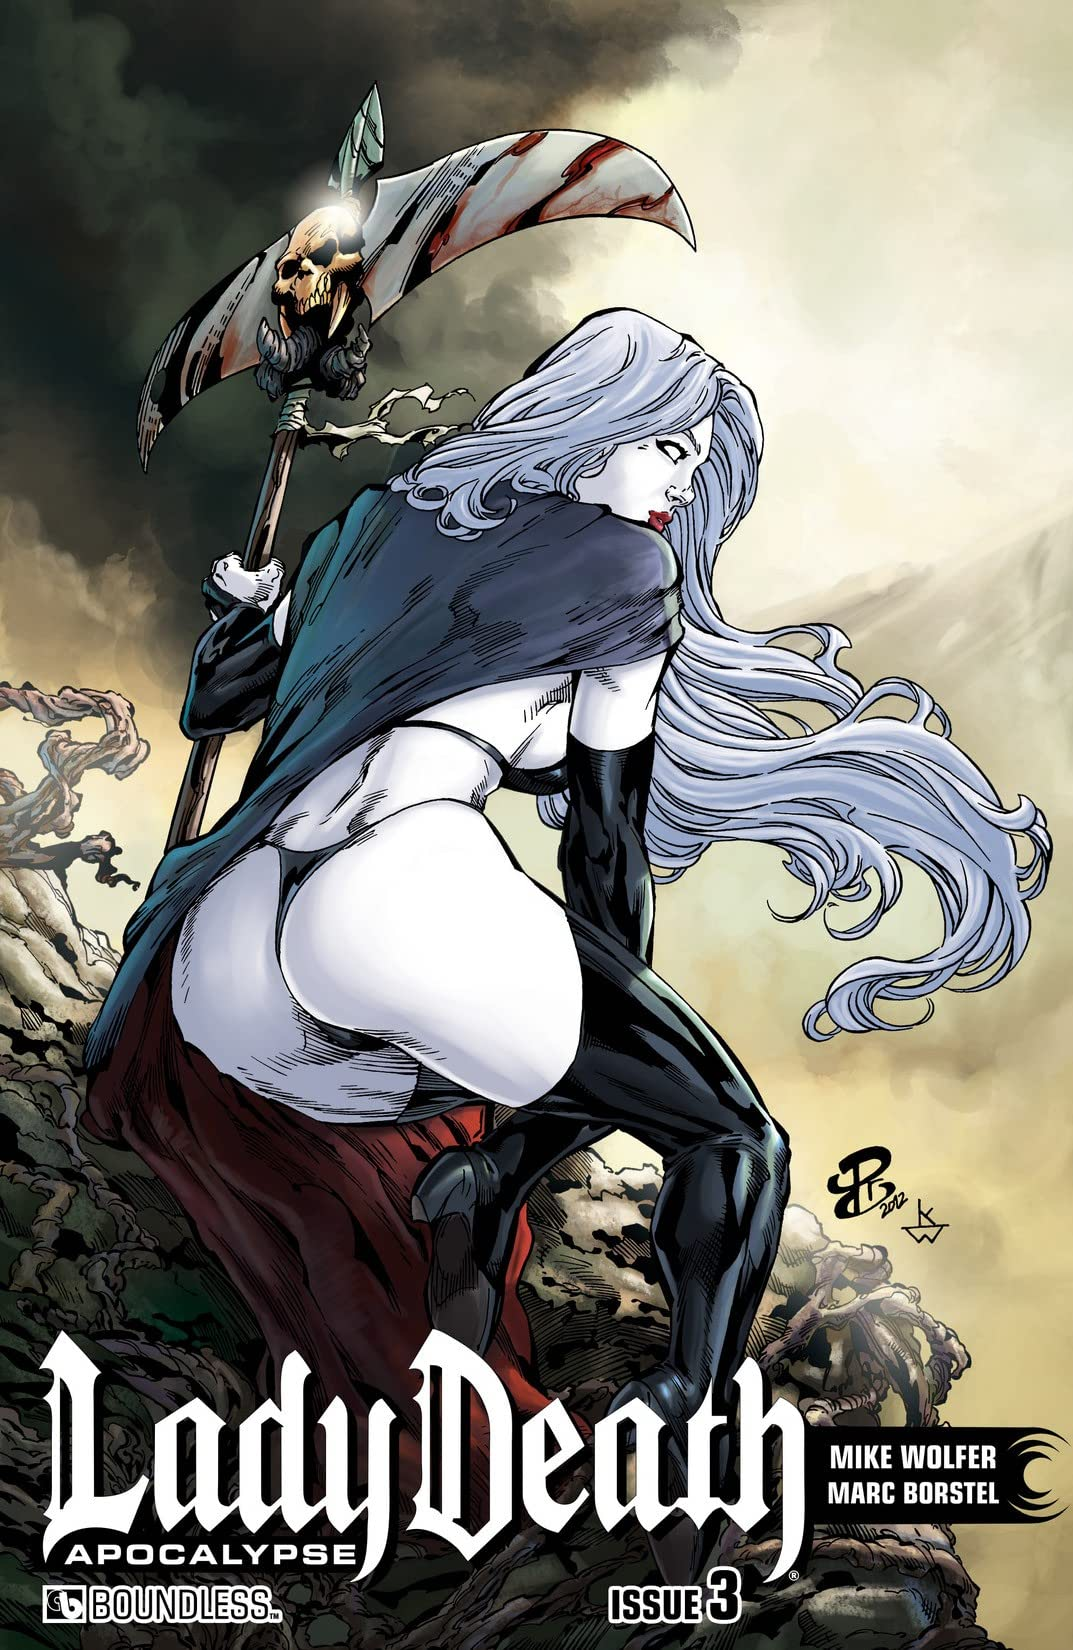 Lady Death: Apocalypse #3